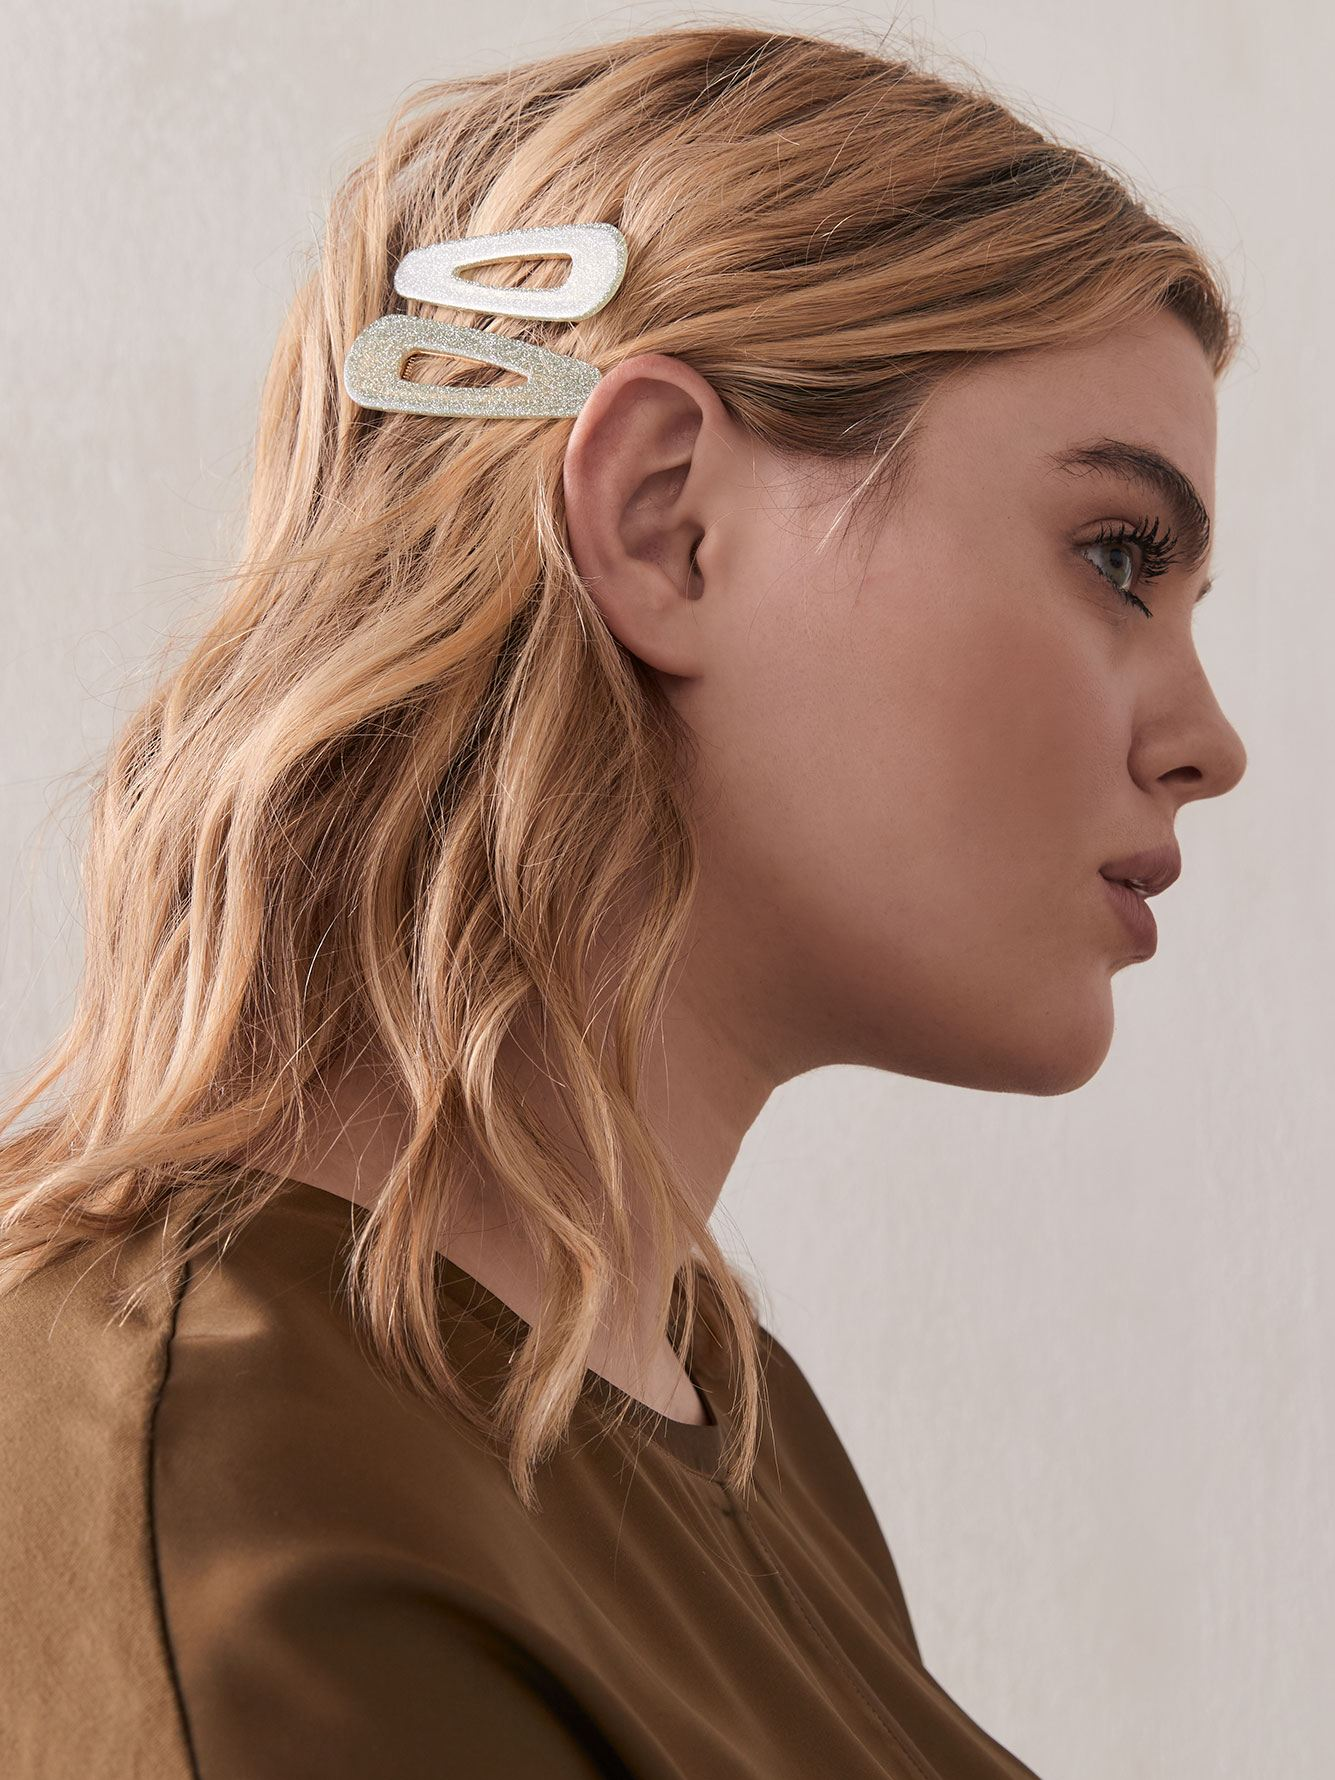 Shiny Resin Hair Barrettes, Pack of 2 - Addition Elle